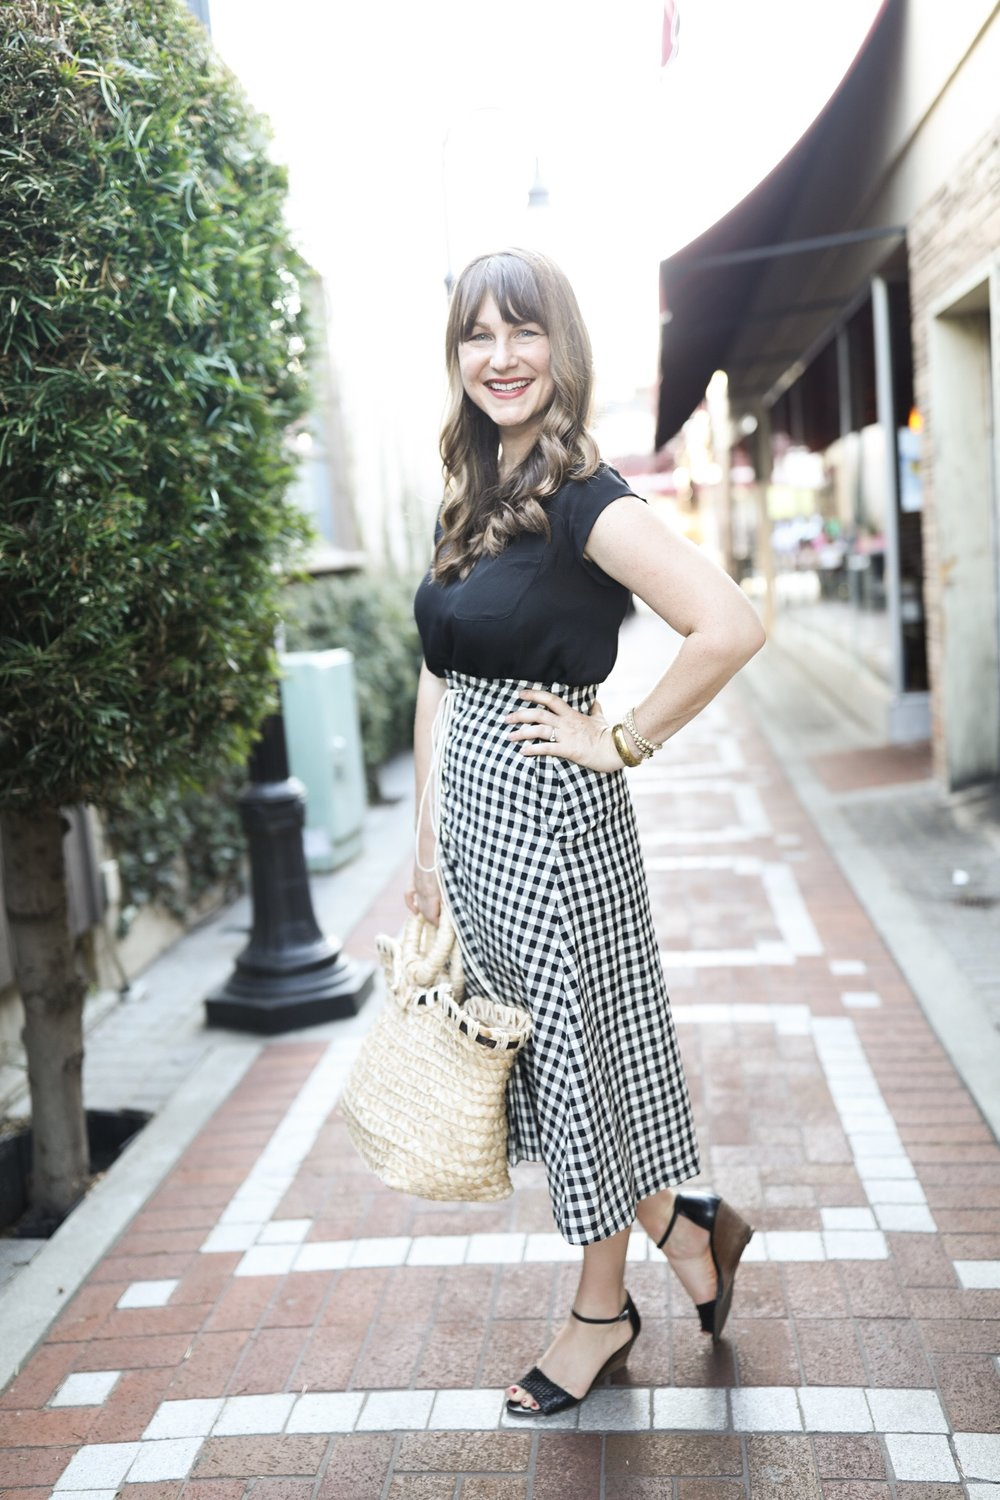 Black and White Gingham Skirt by Eva Franco (Made in USA) | Birds of a Thread